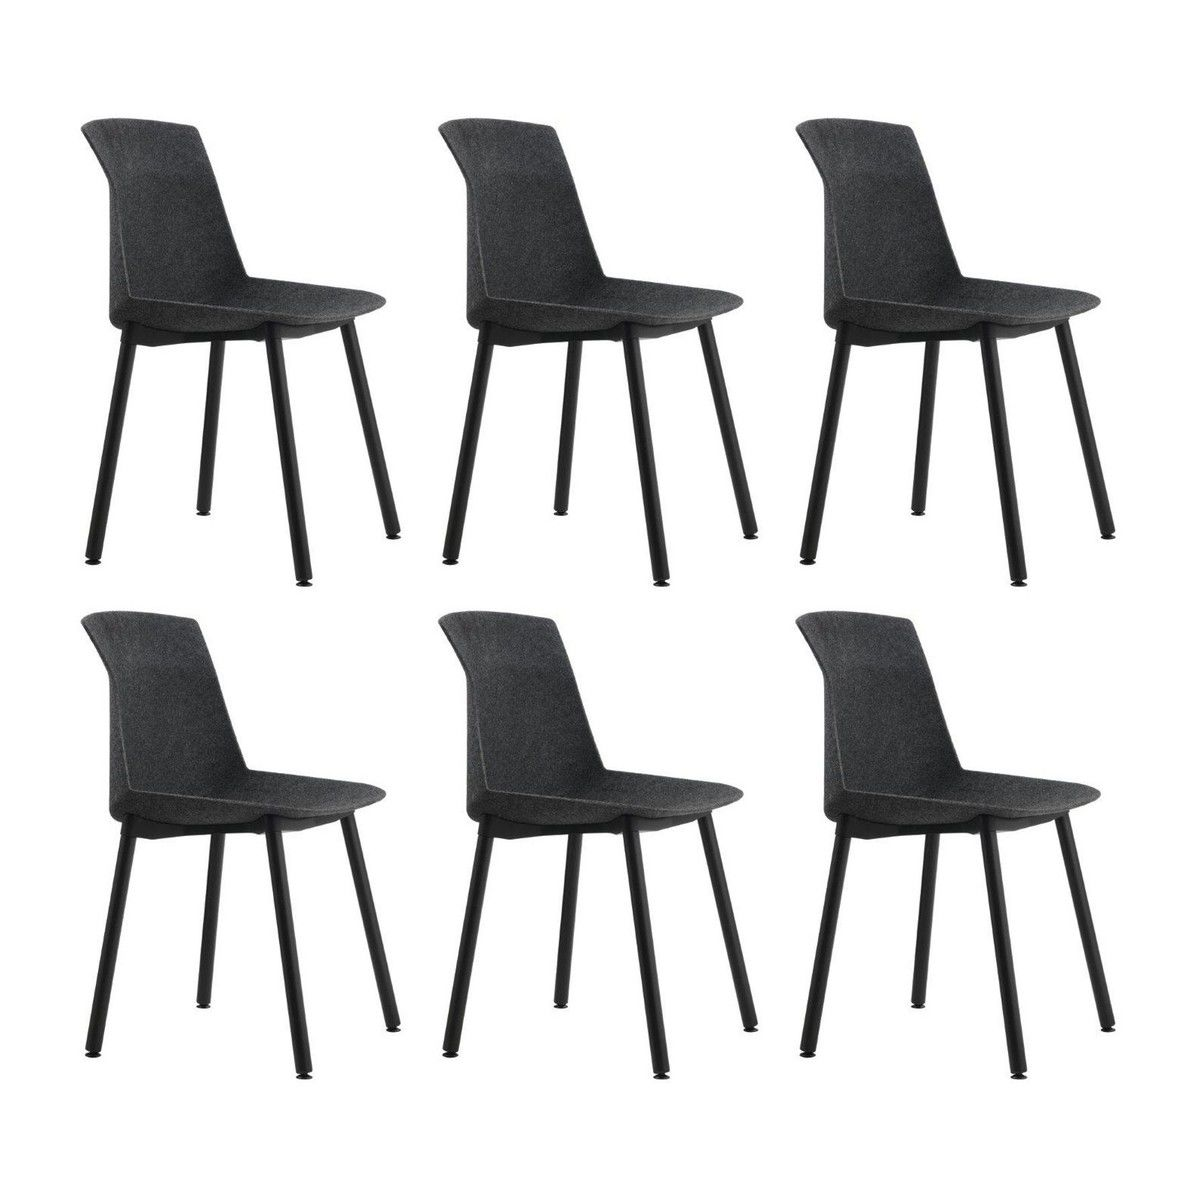 Cassina   Motek Promotion Set 6 Chairs For The Price Of 5   Anthracite/frame